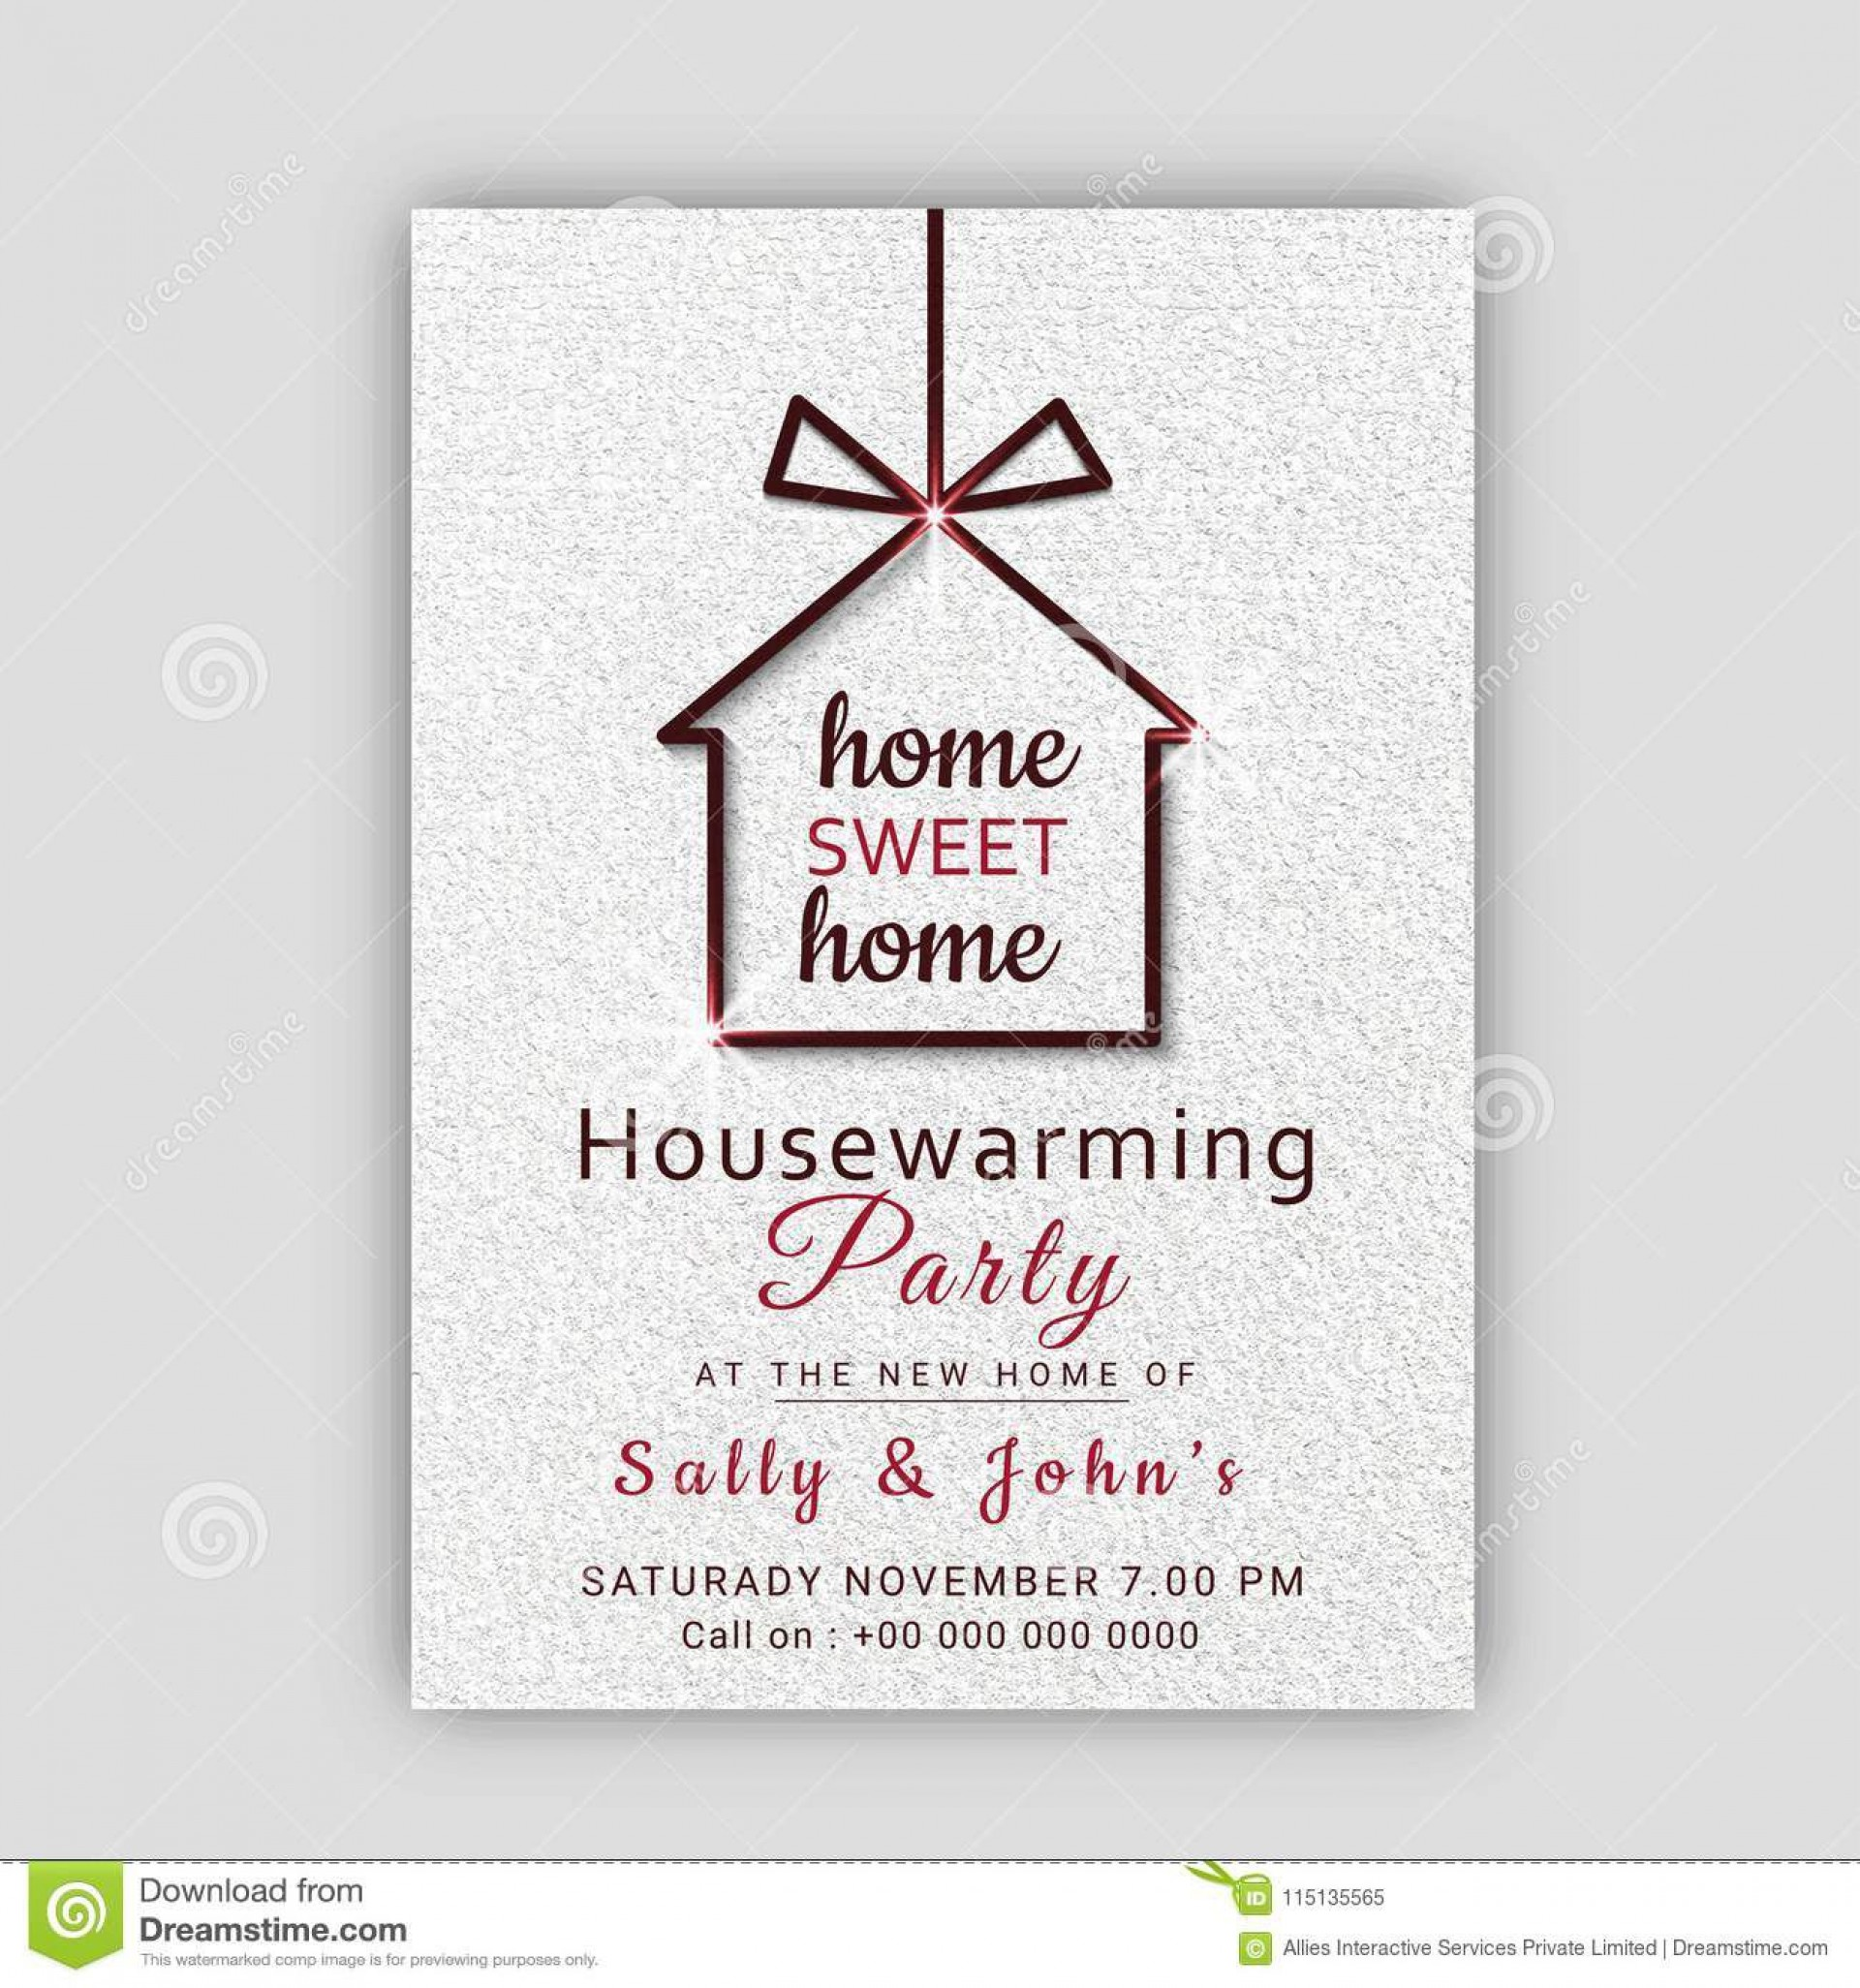 009 Stupendou Housewarming Party Invitation Template Inspiration  Templates Free Download Card1920